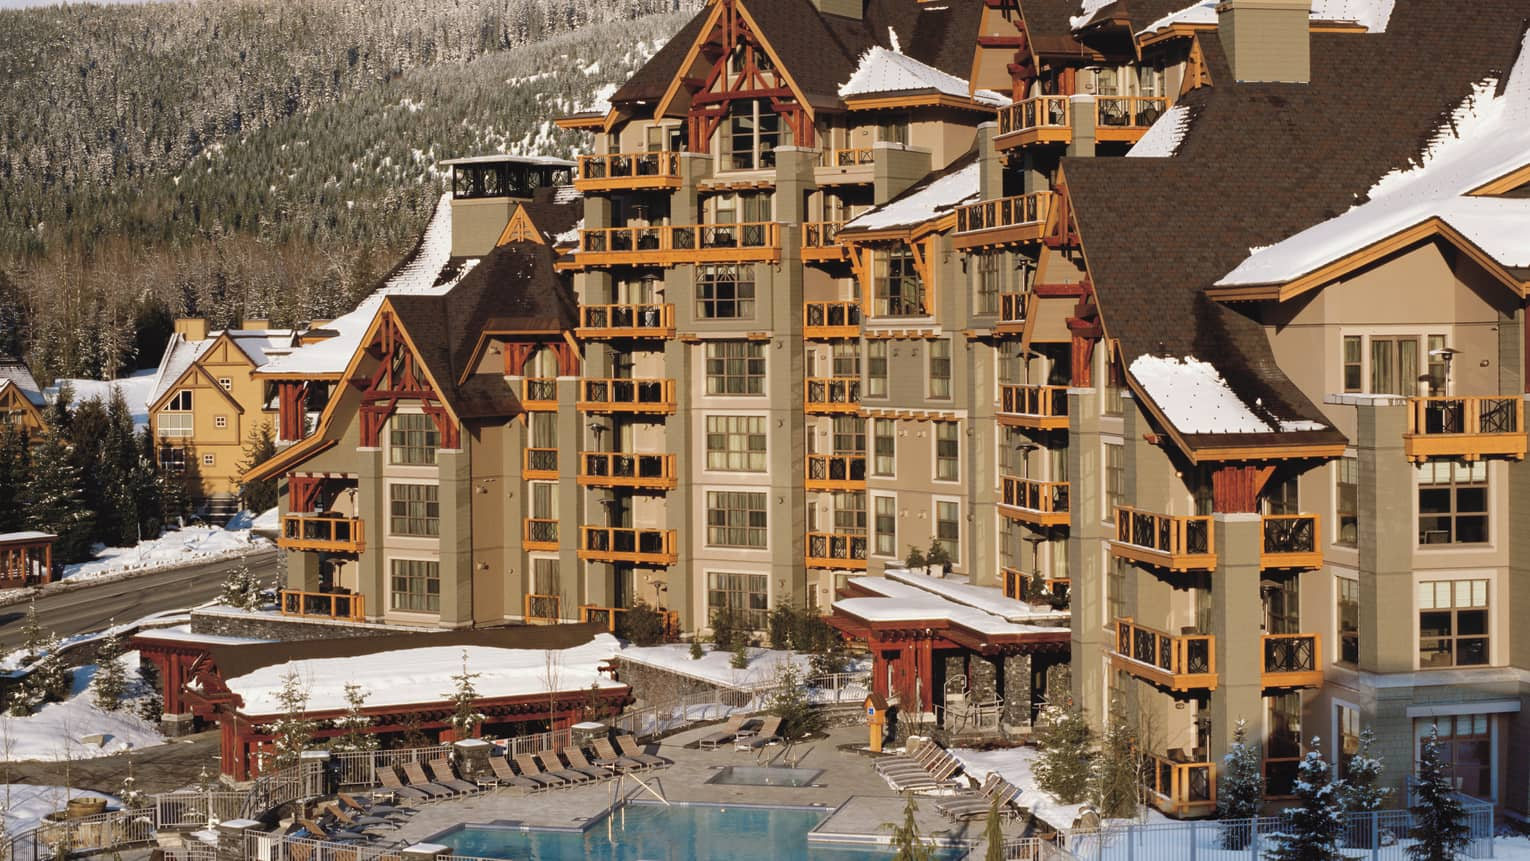 Exterior view of Whistler mountain resort building, pool area